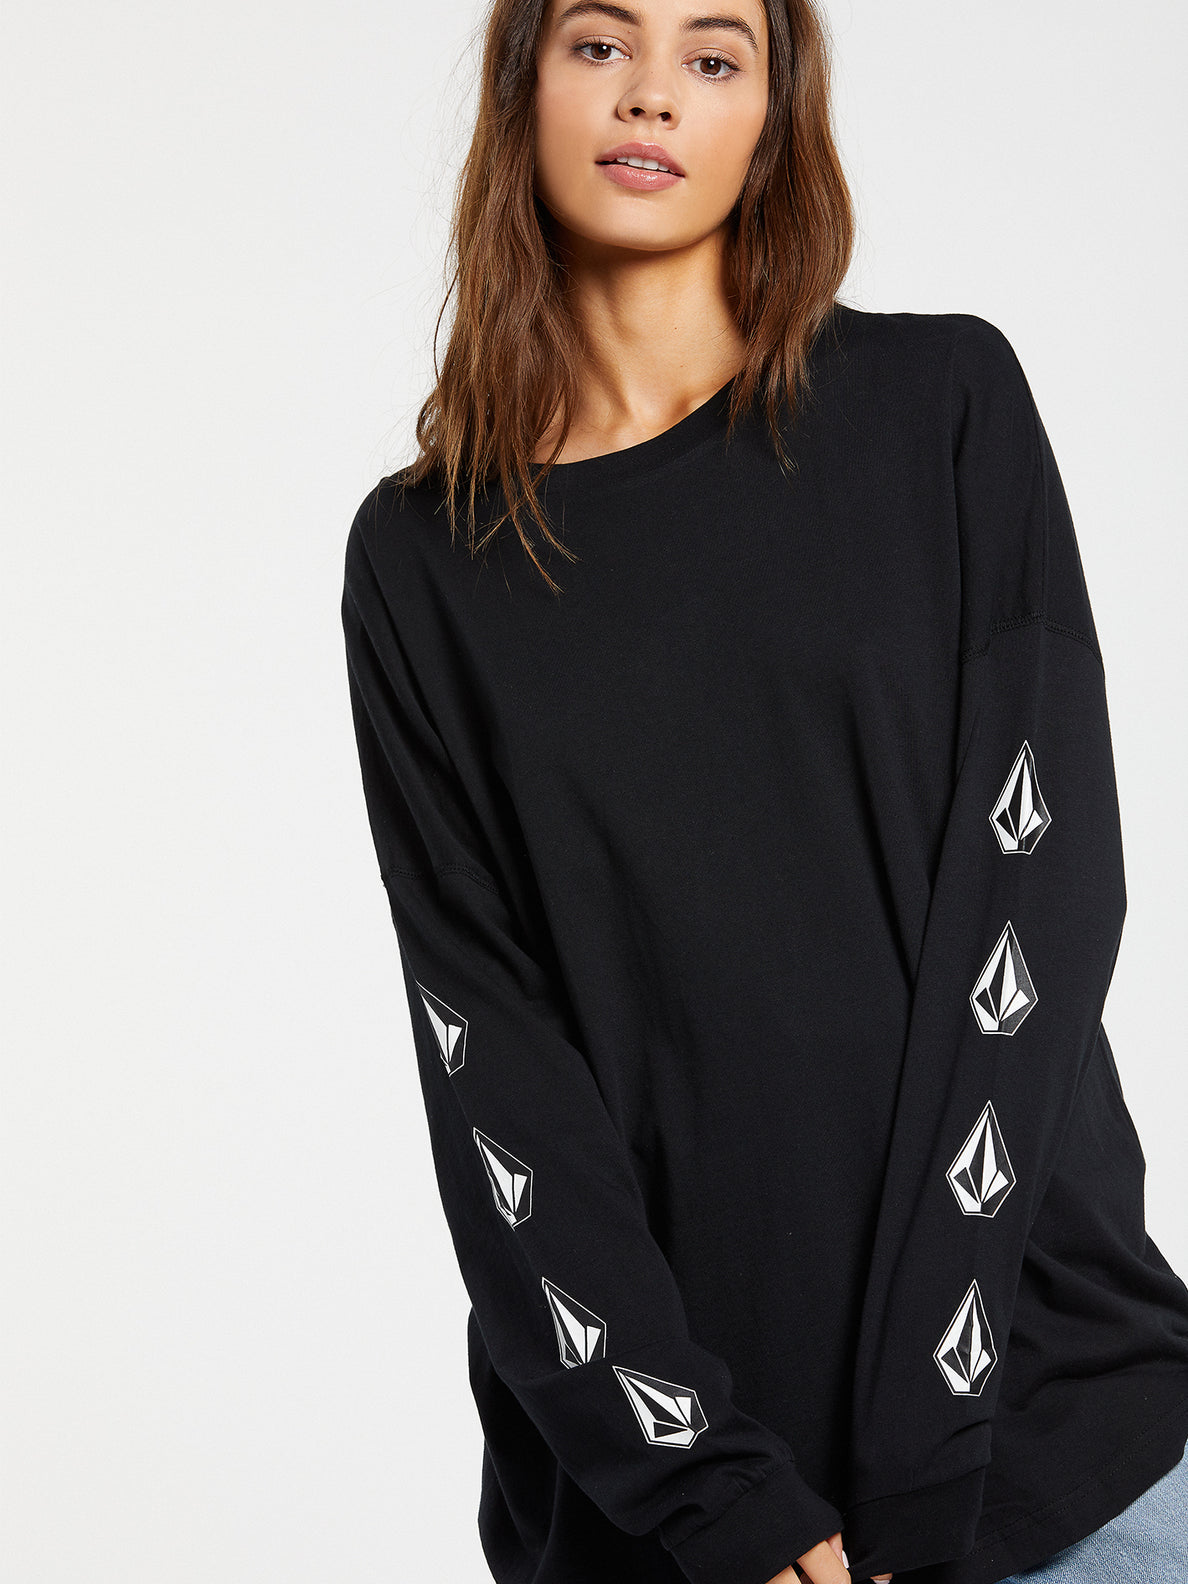 Deadly Stones Long Sleeve - Black (B3632002_BLK) [29]